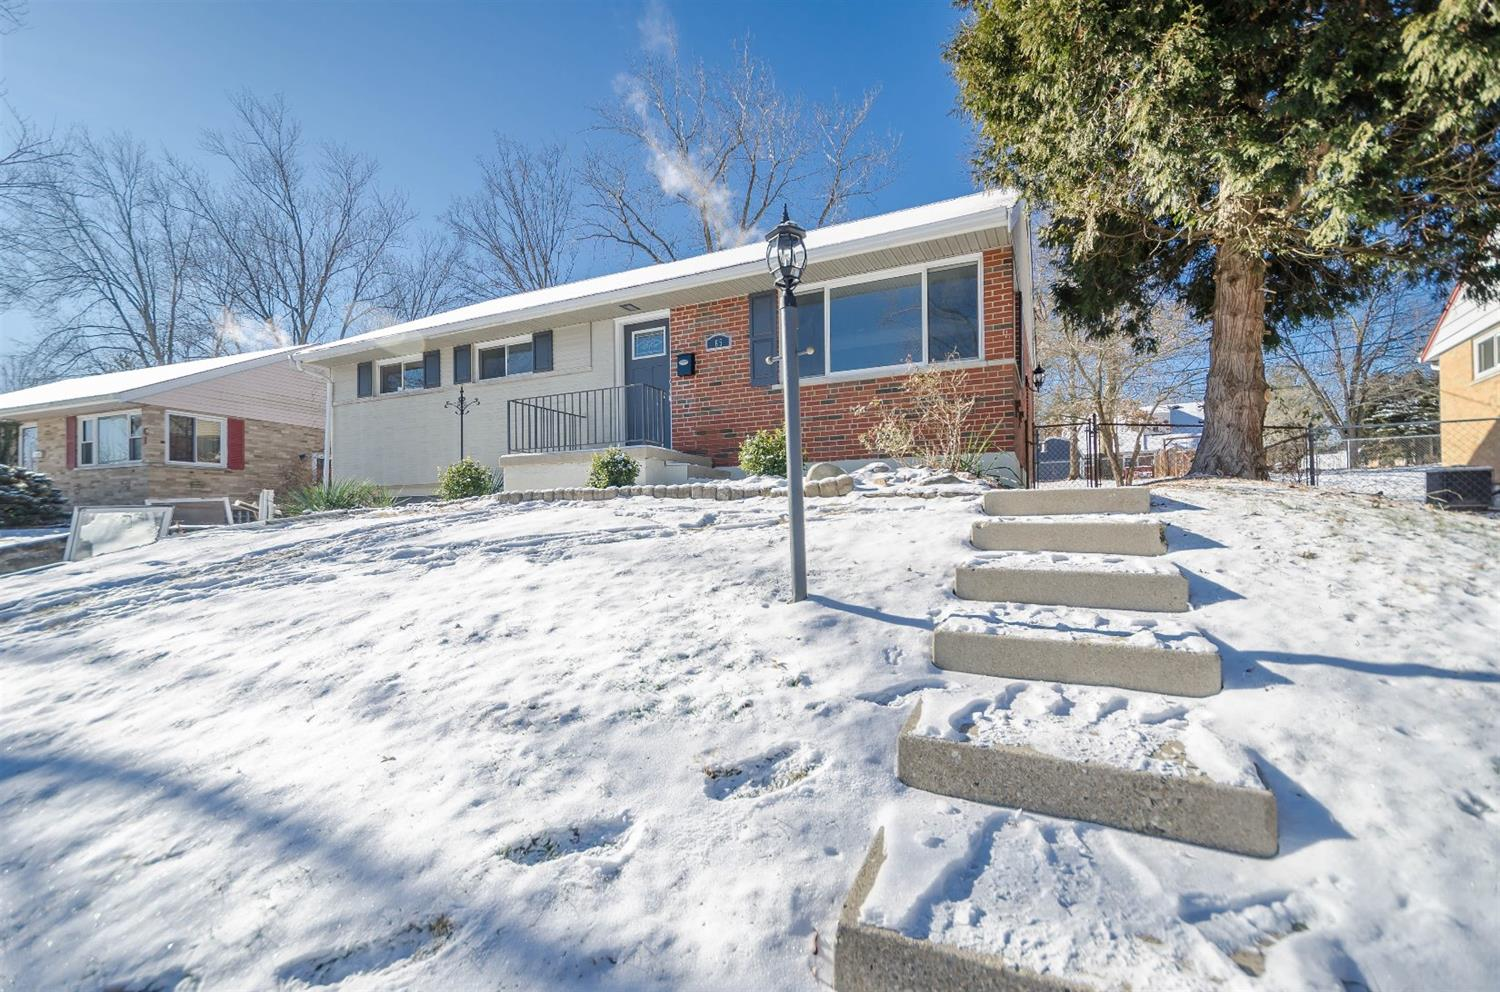 65 Illona Dr Greenhills, OH